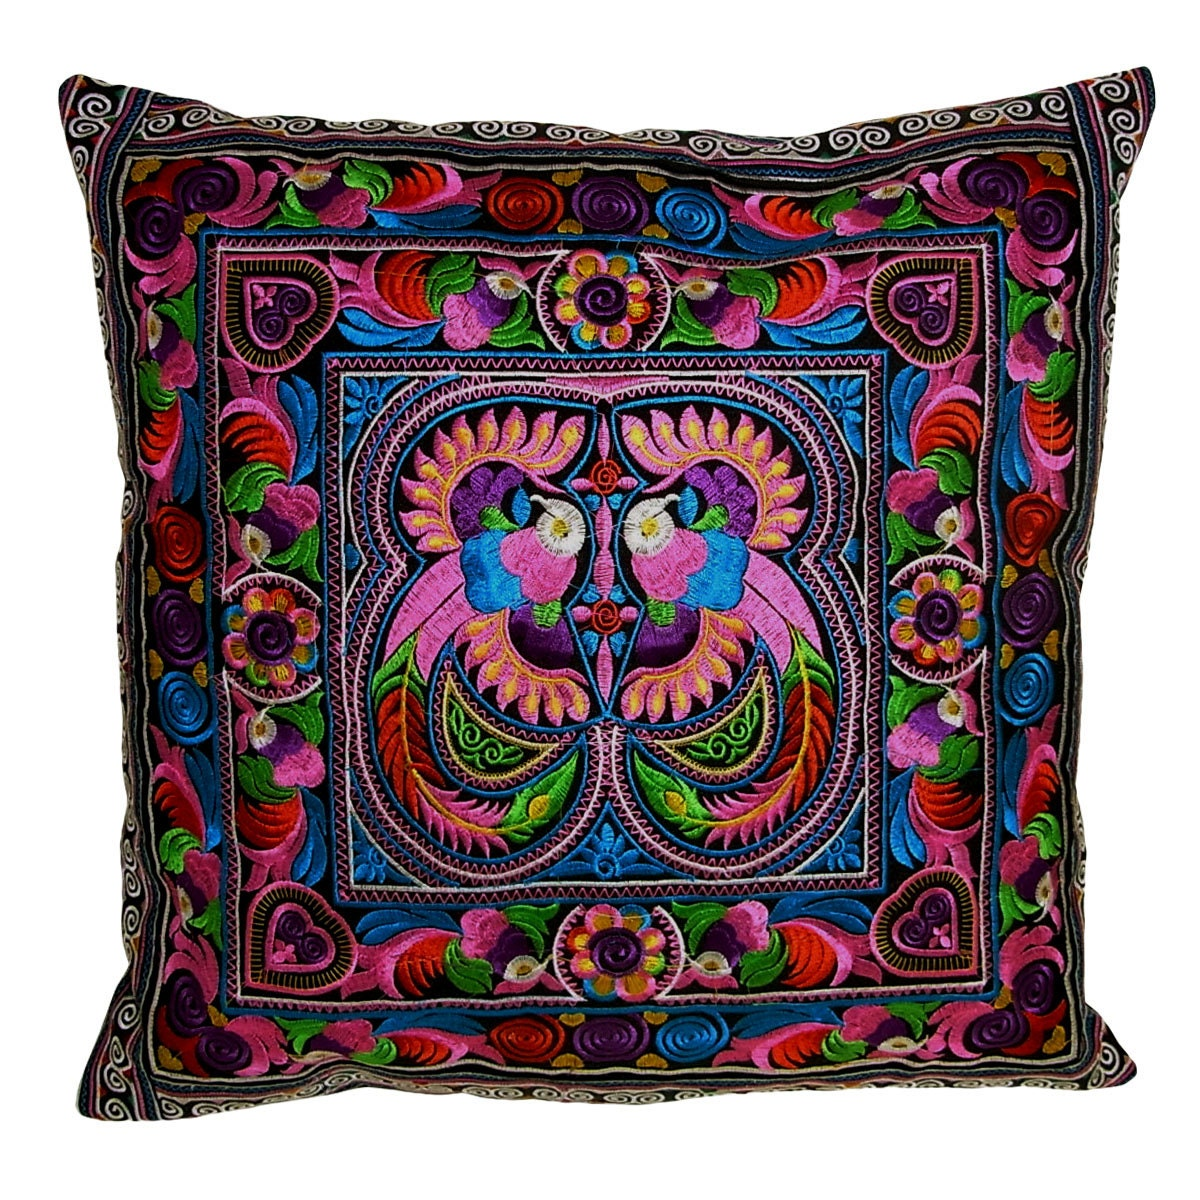 Hmong Hill Tribe Embroiderd Ethic Cushion Pillows Covers - Funny Colors Asian Peacock